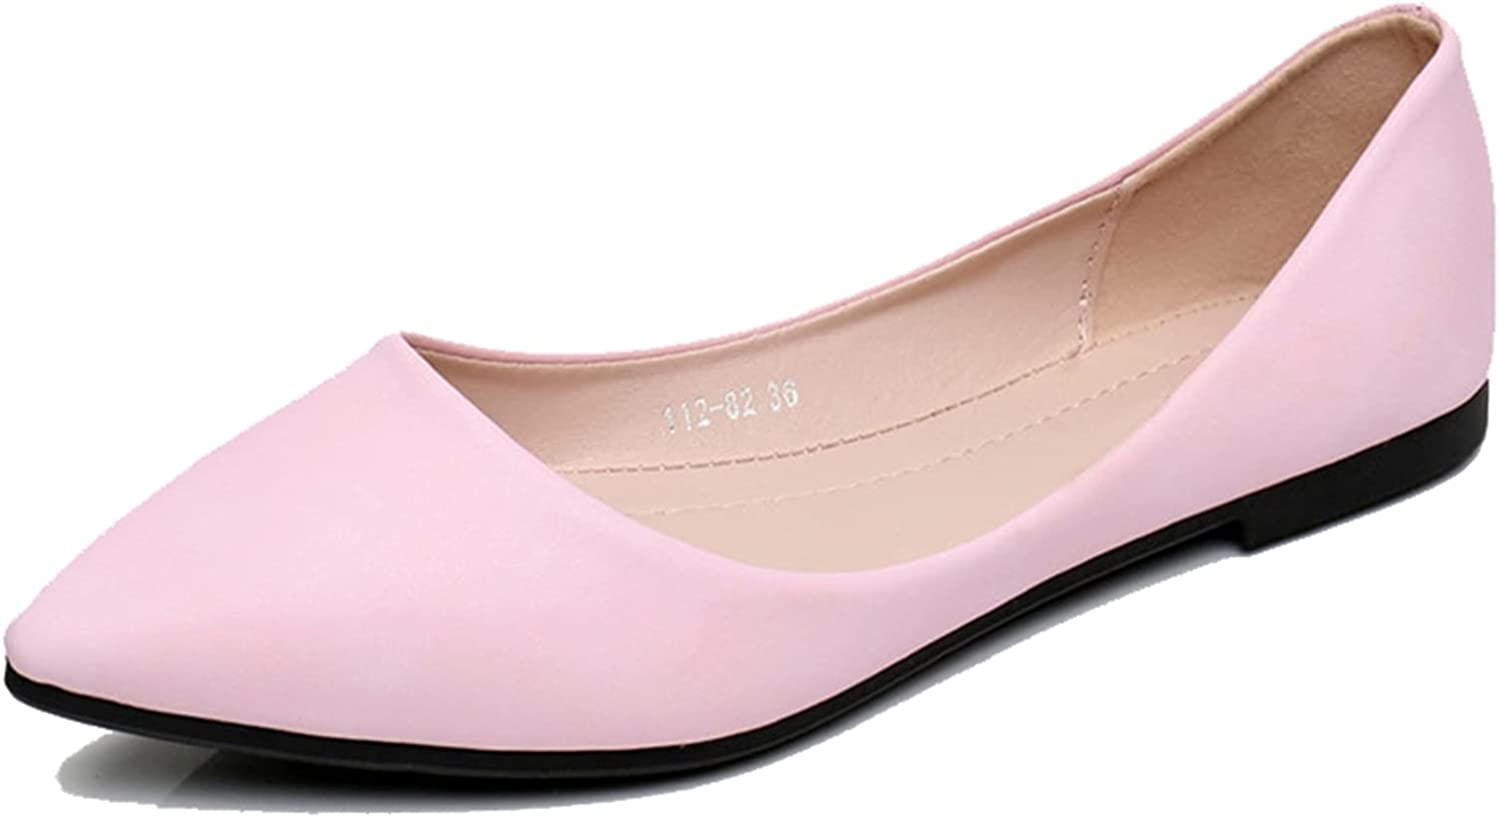 XHFUS Ranking TOP3 Loafers Nashville-Davidson Mall for Women Leisure Casual Pointed Wild Ca Toe Shoes